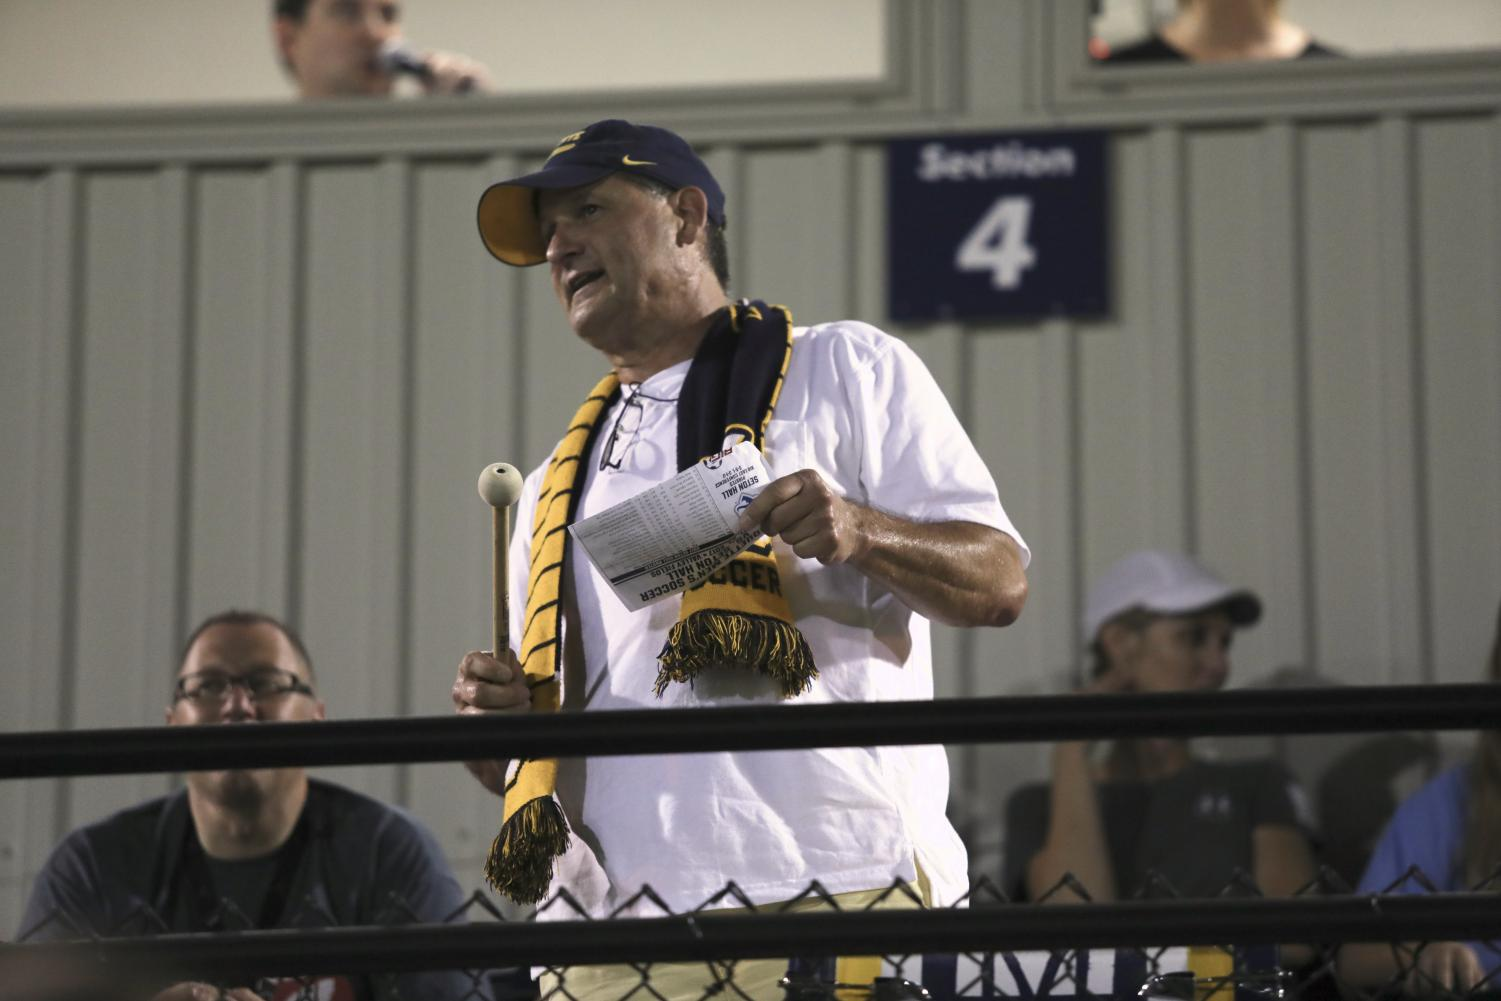 David Heim, also known as Drum Guy, yells encouragement to the men's soccer team.